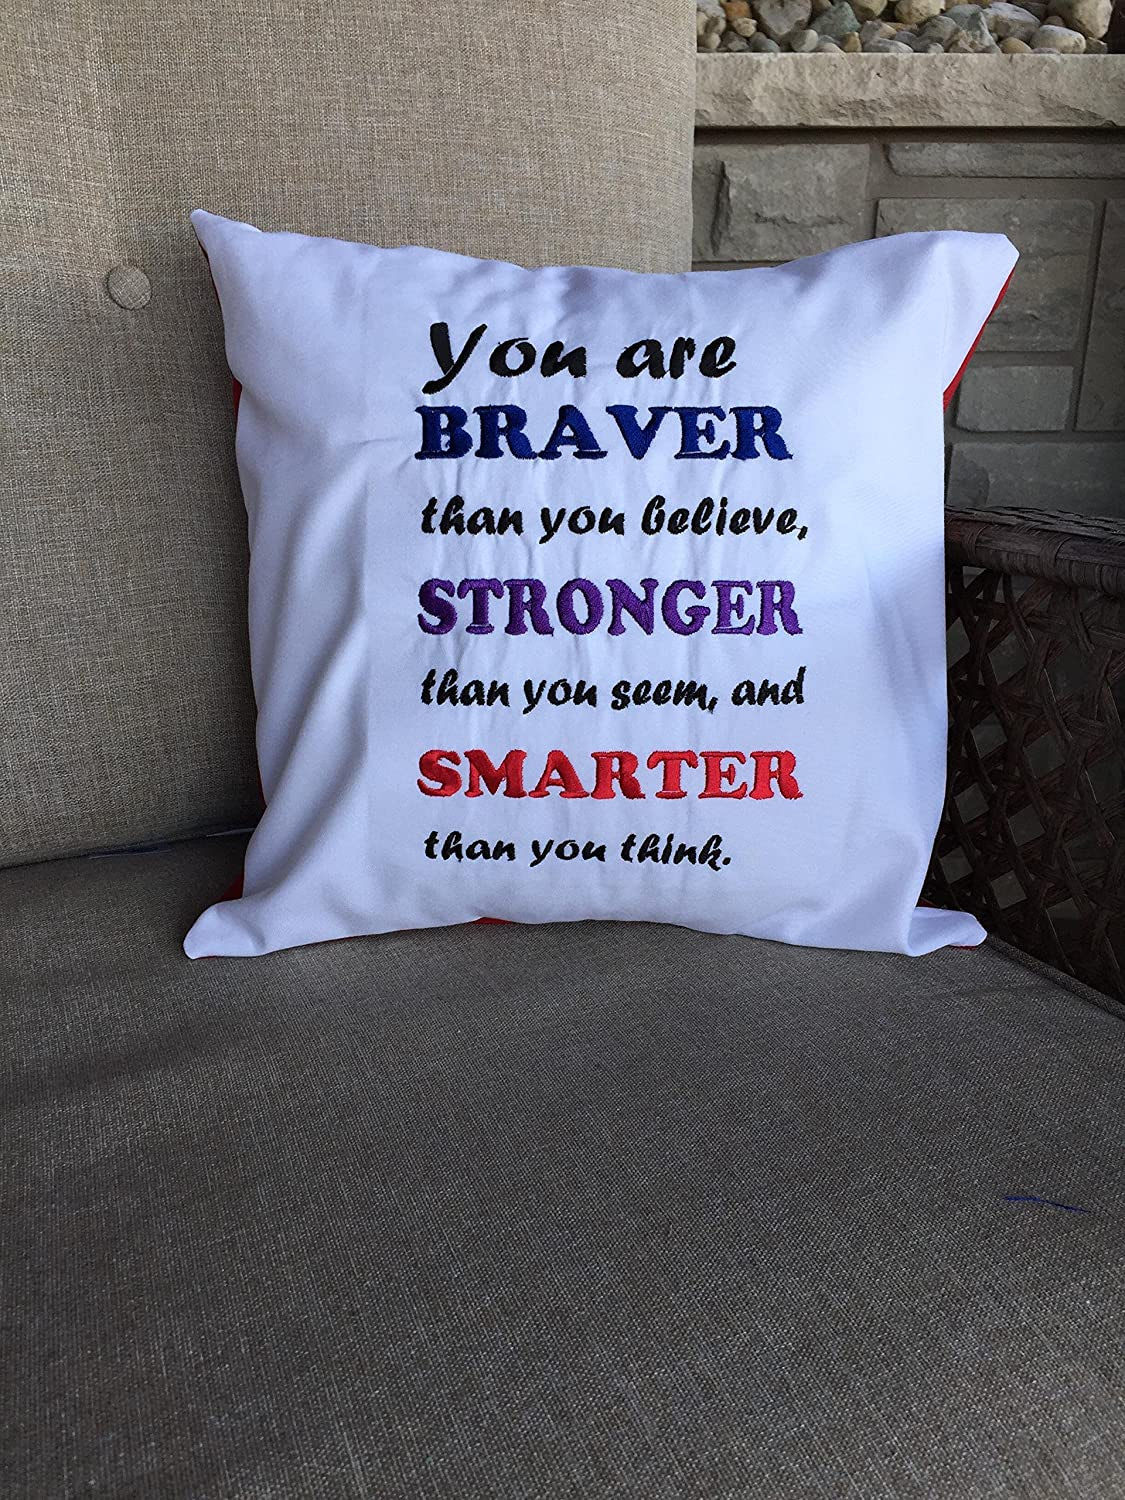 Embroidered Throw Pillow, You are braver pillow quote